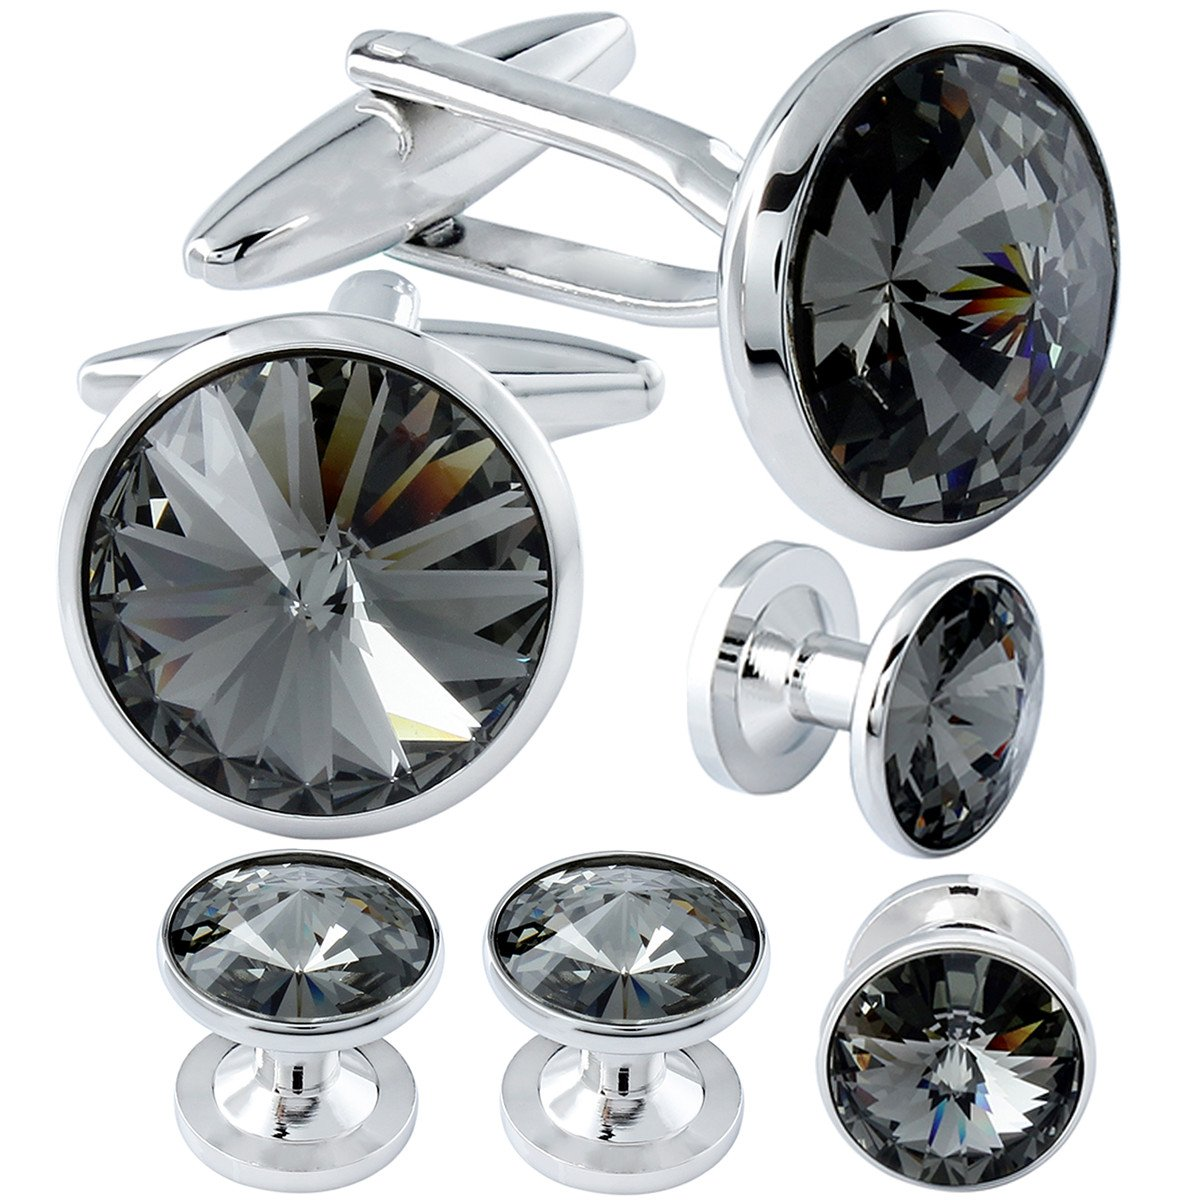 HAWSON Cufflink and Studs Tuxedo Set Silver Color with Swarovski Crystals in Grey by HAWSON (Image #1)